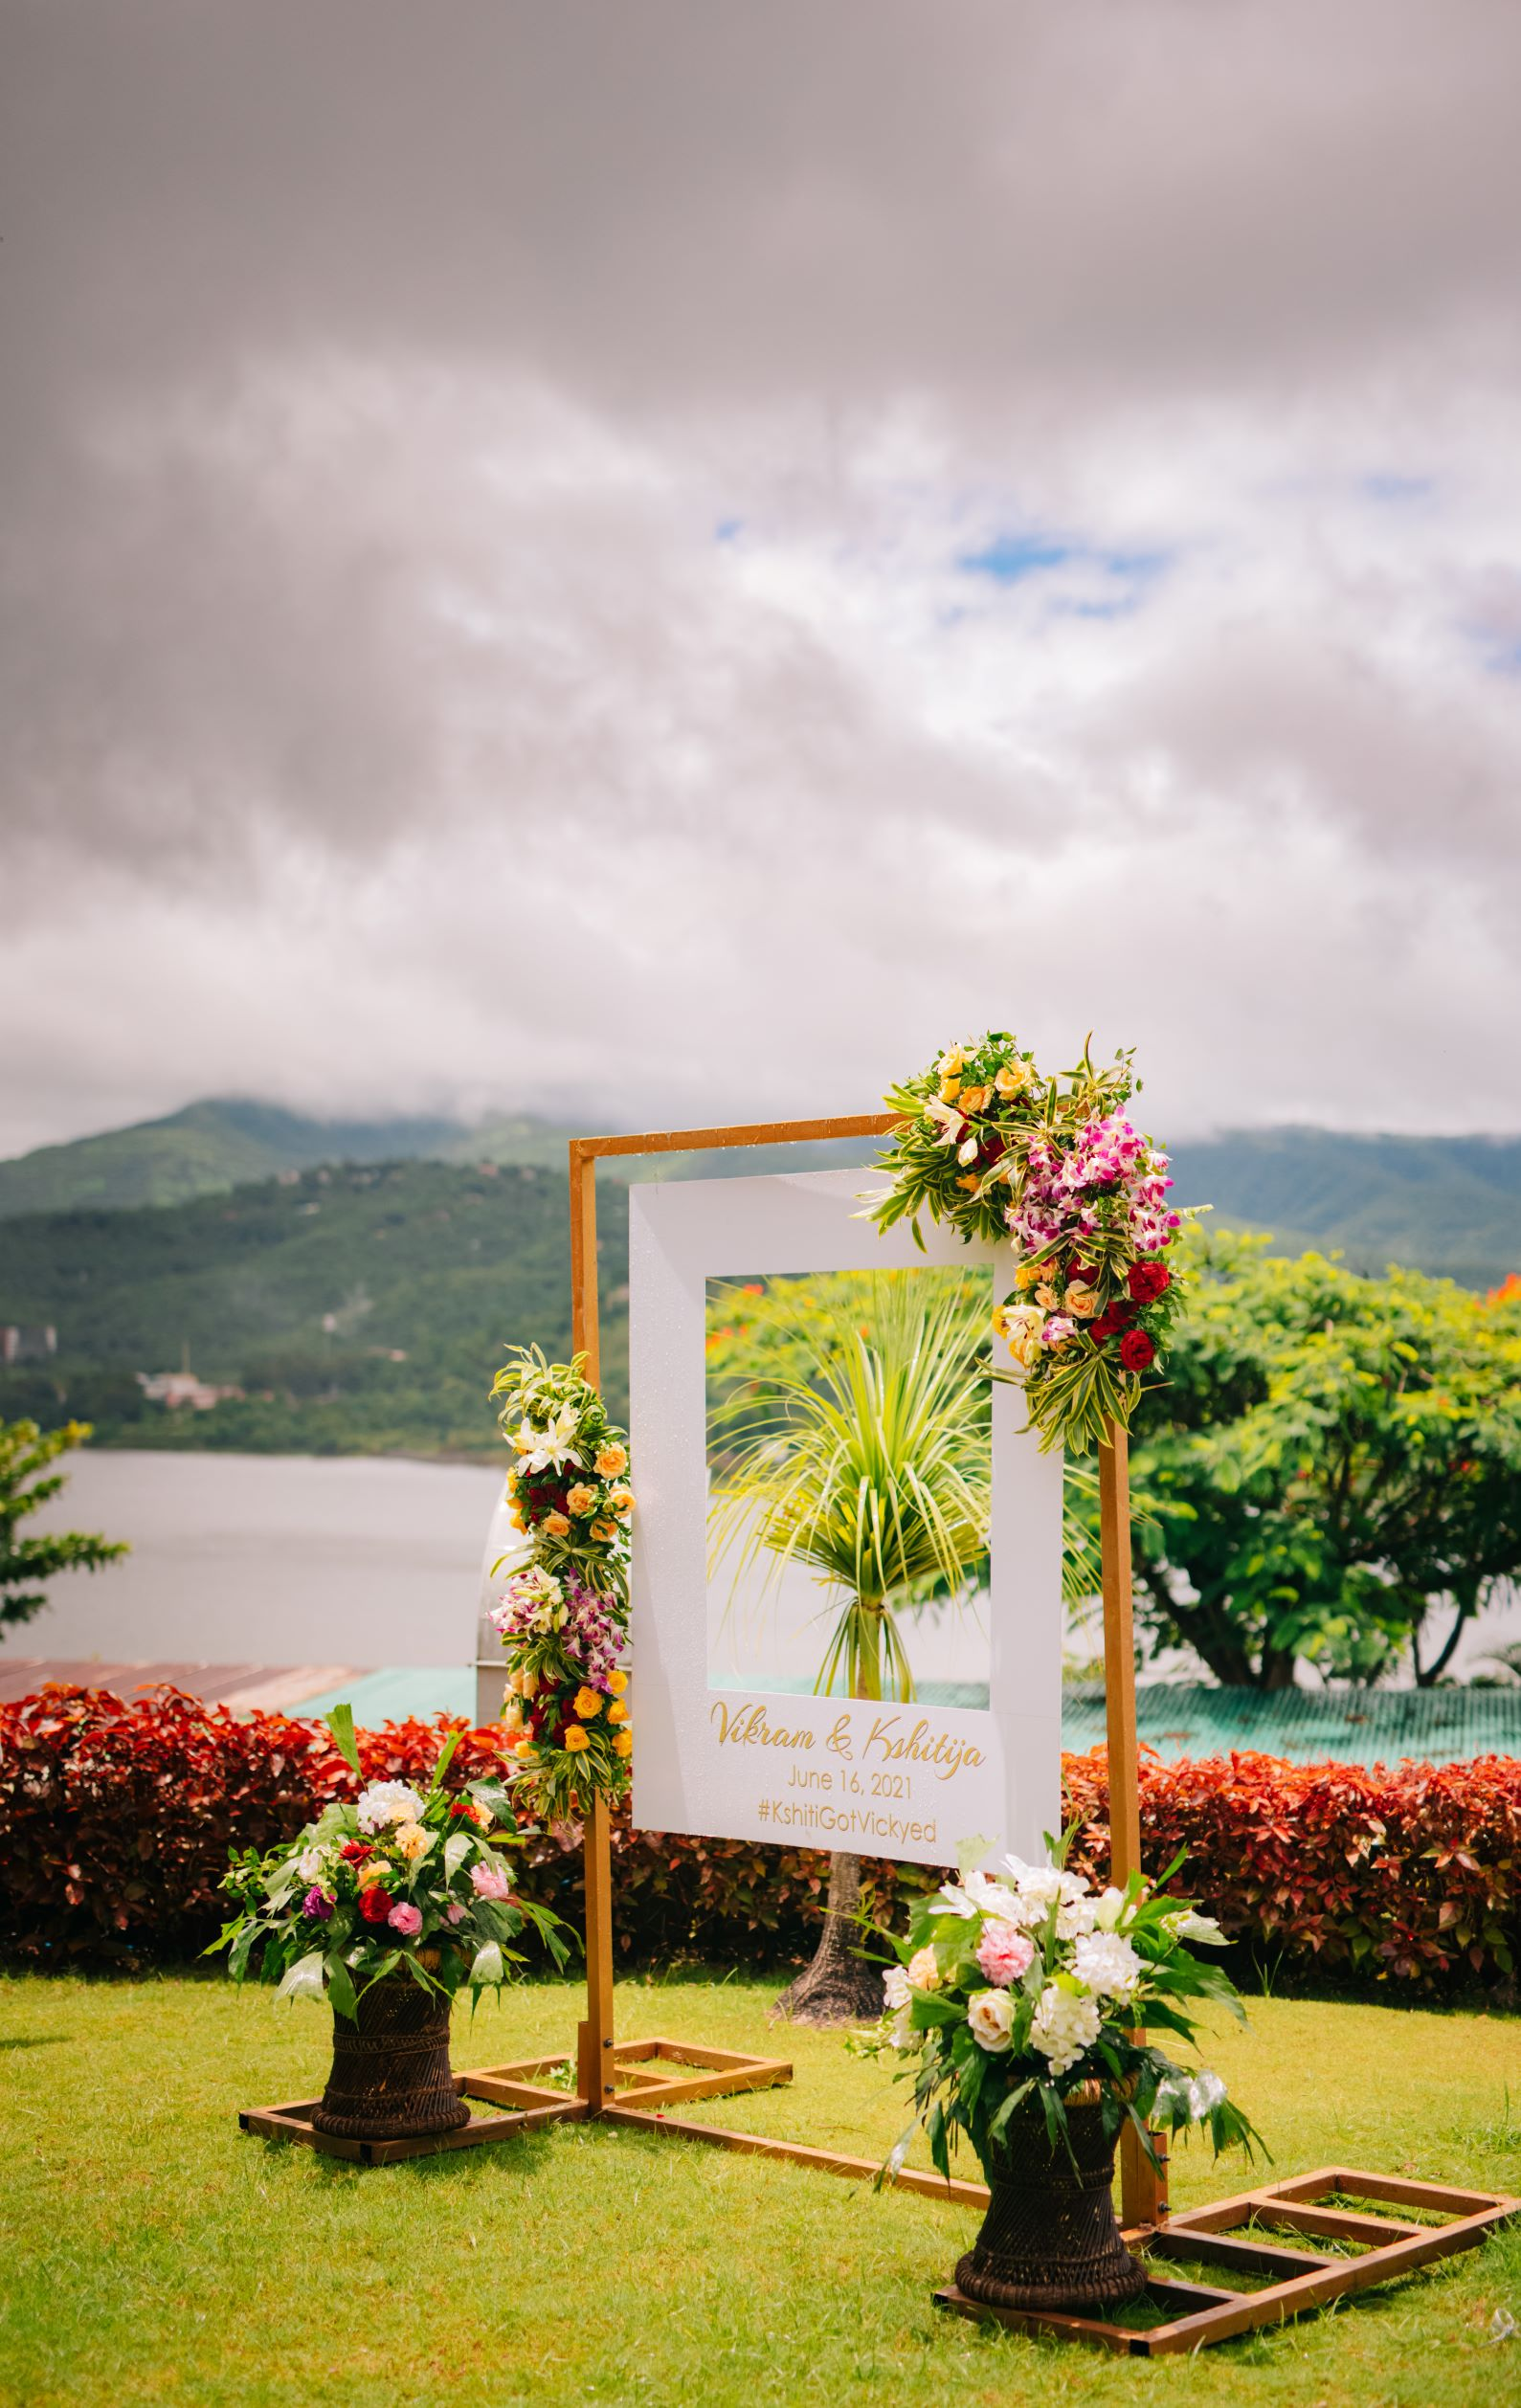 picturesque shot of the floral signage